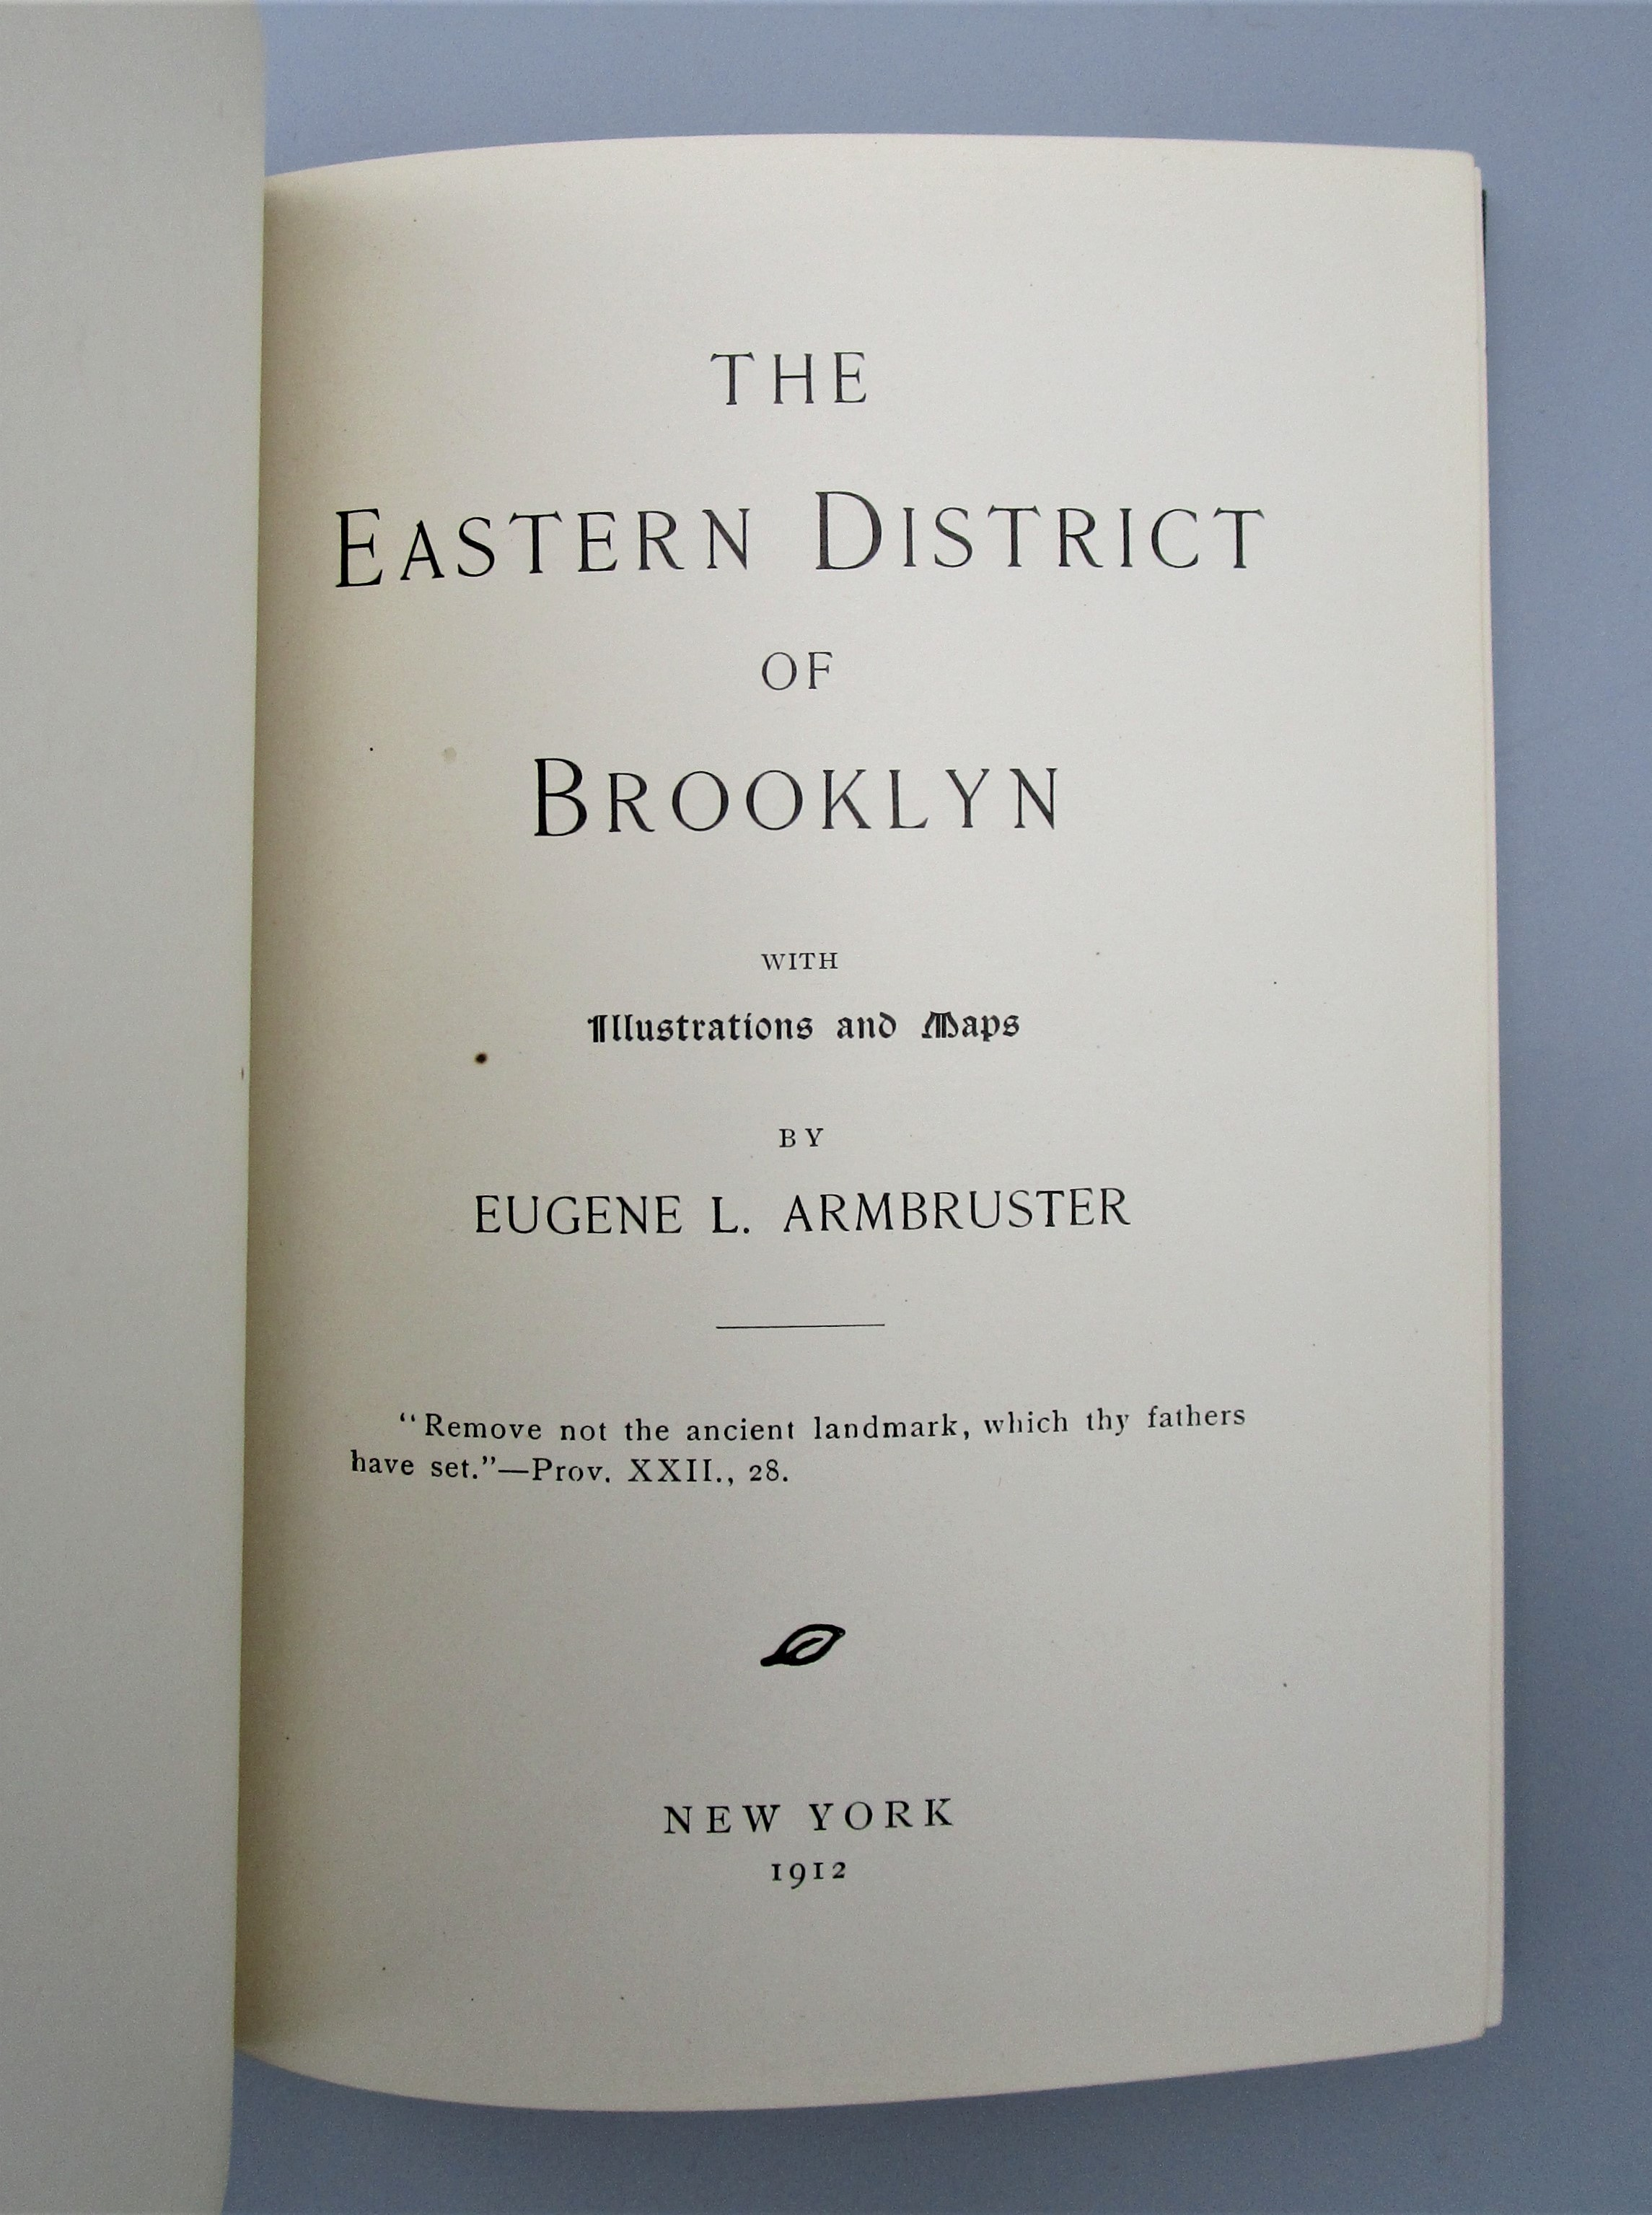 THE EASTERN DISTRICT OF BROOKLYN, by Eugene L. Armbruster - 1912 [1st Ed w/Maps]